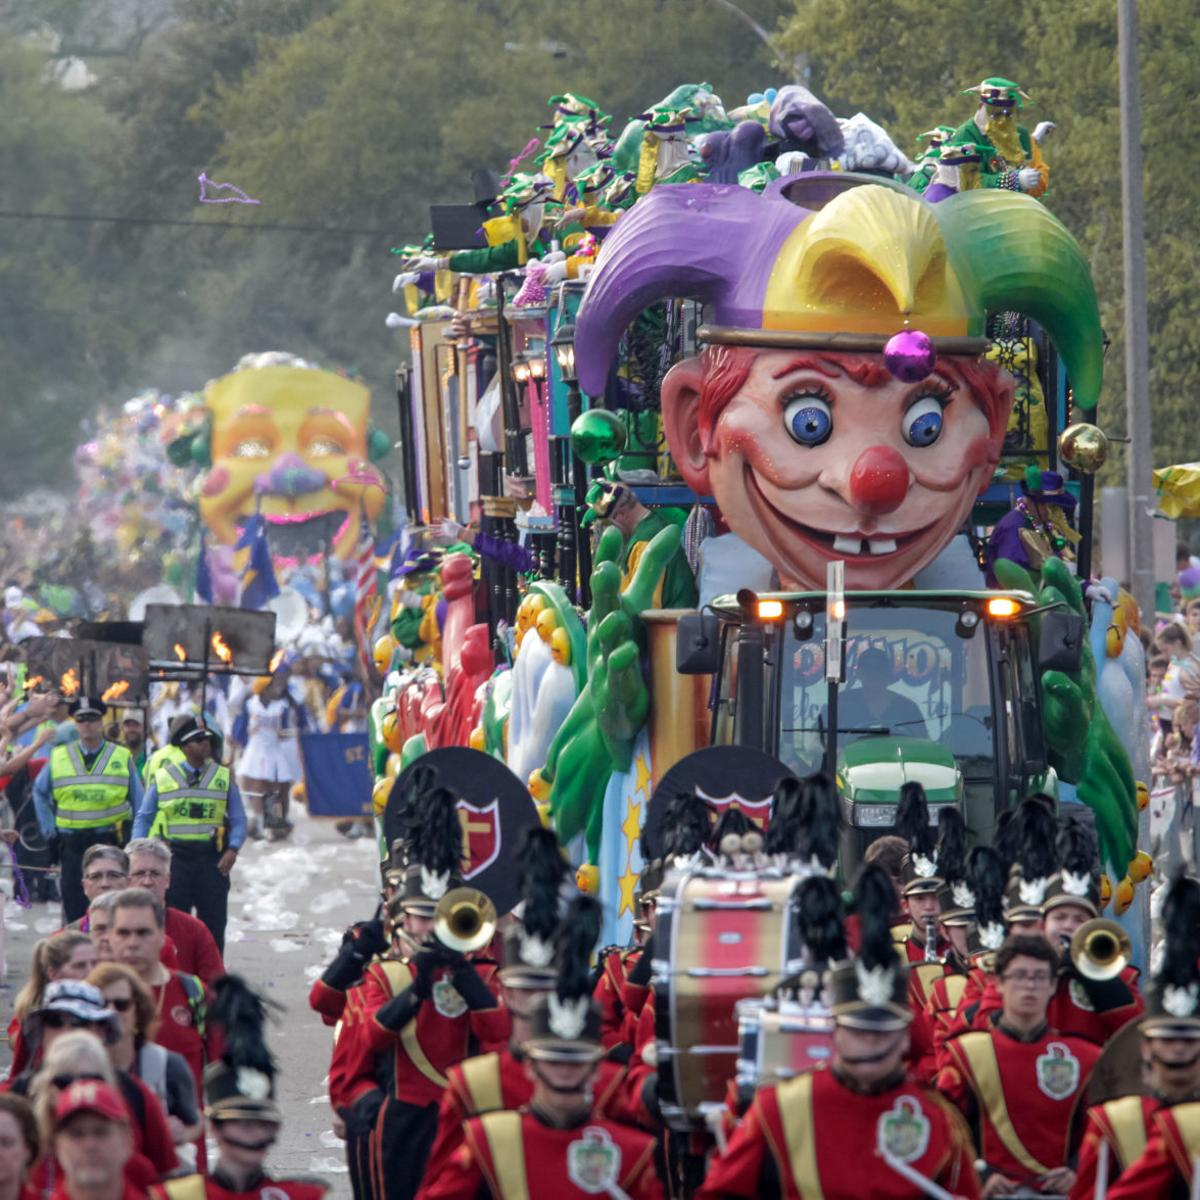 Mardi Gra New Orleans 2020 When is Mardi Gras 2020? Make your plans now for an earlier Fat